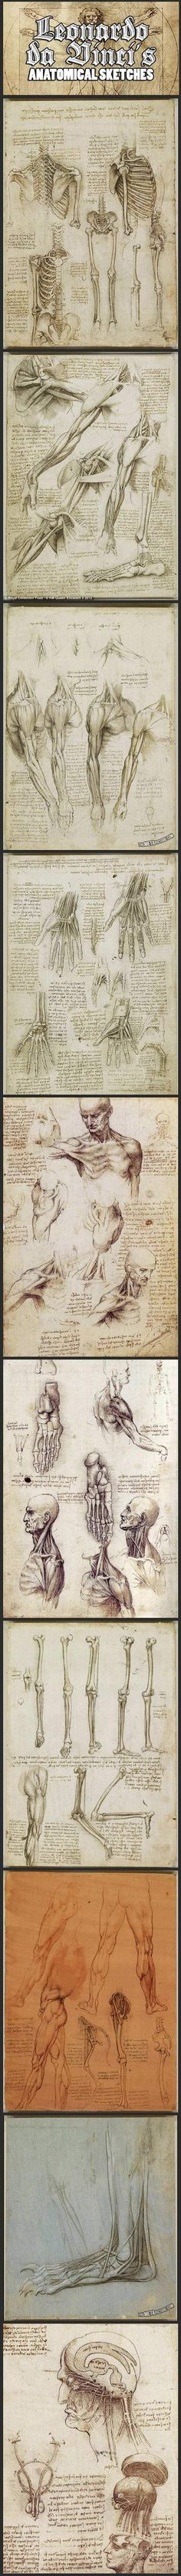 Leonardo da Vinci's anatomical sketches…  Rumor has it that he discovered all this by raiding graves and cutting up fresh corpses. Think it's true?